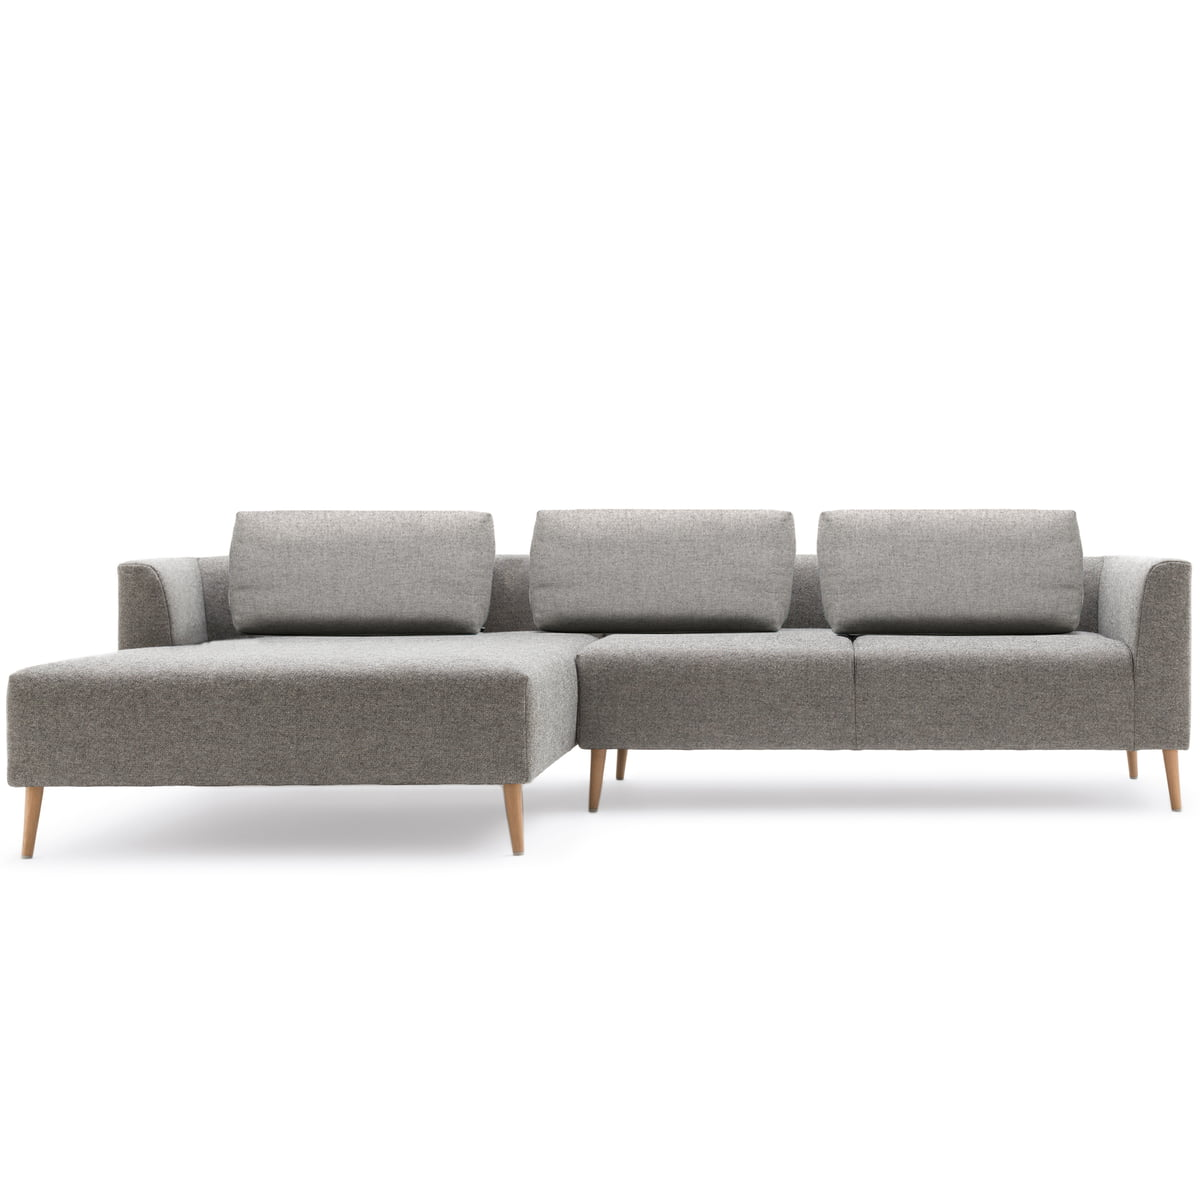 Recamier sofa recamier sofa 72 with bcctl thesofa for Sofa recamiere